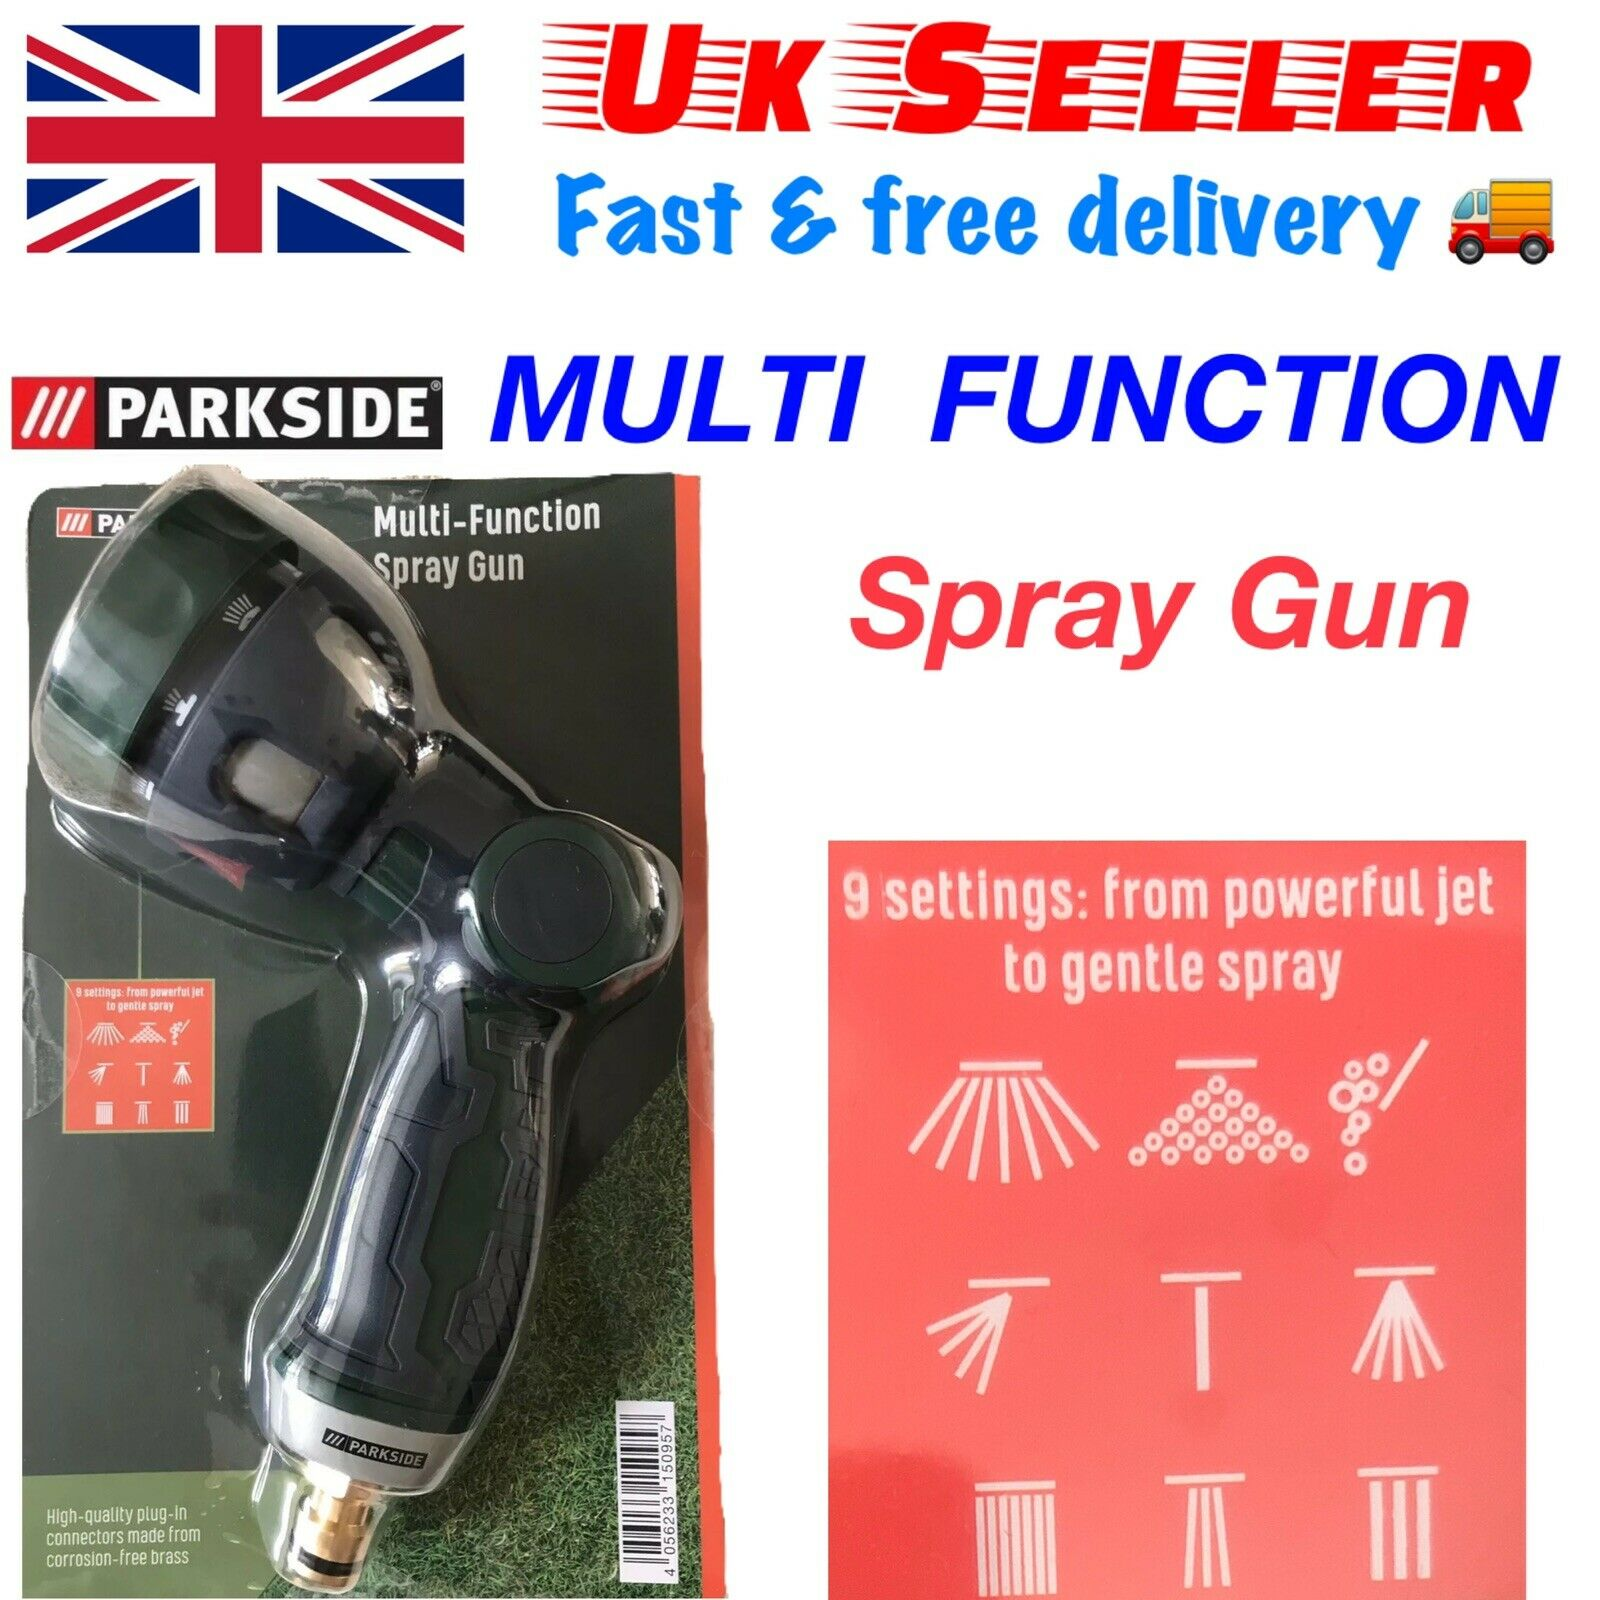 Multi-Function Spray Gun With 9 Setting From Powerful Jet To Gentle Spray .